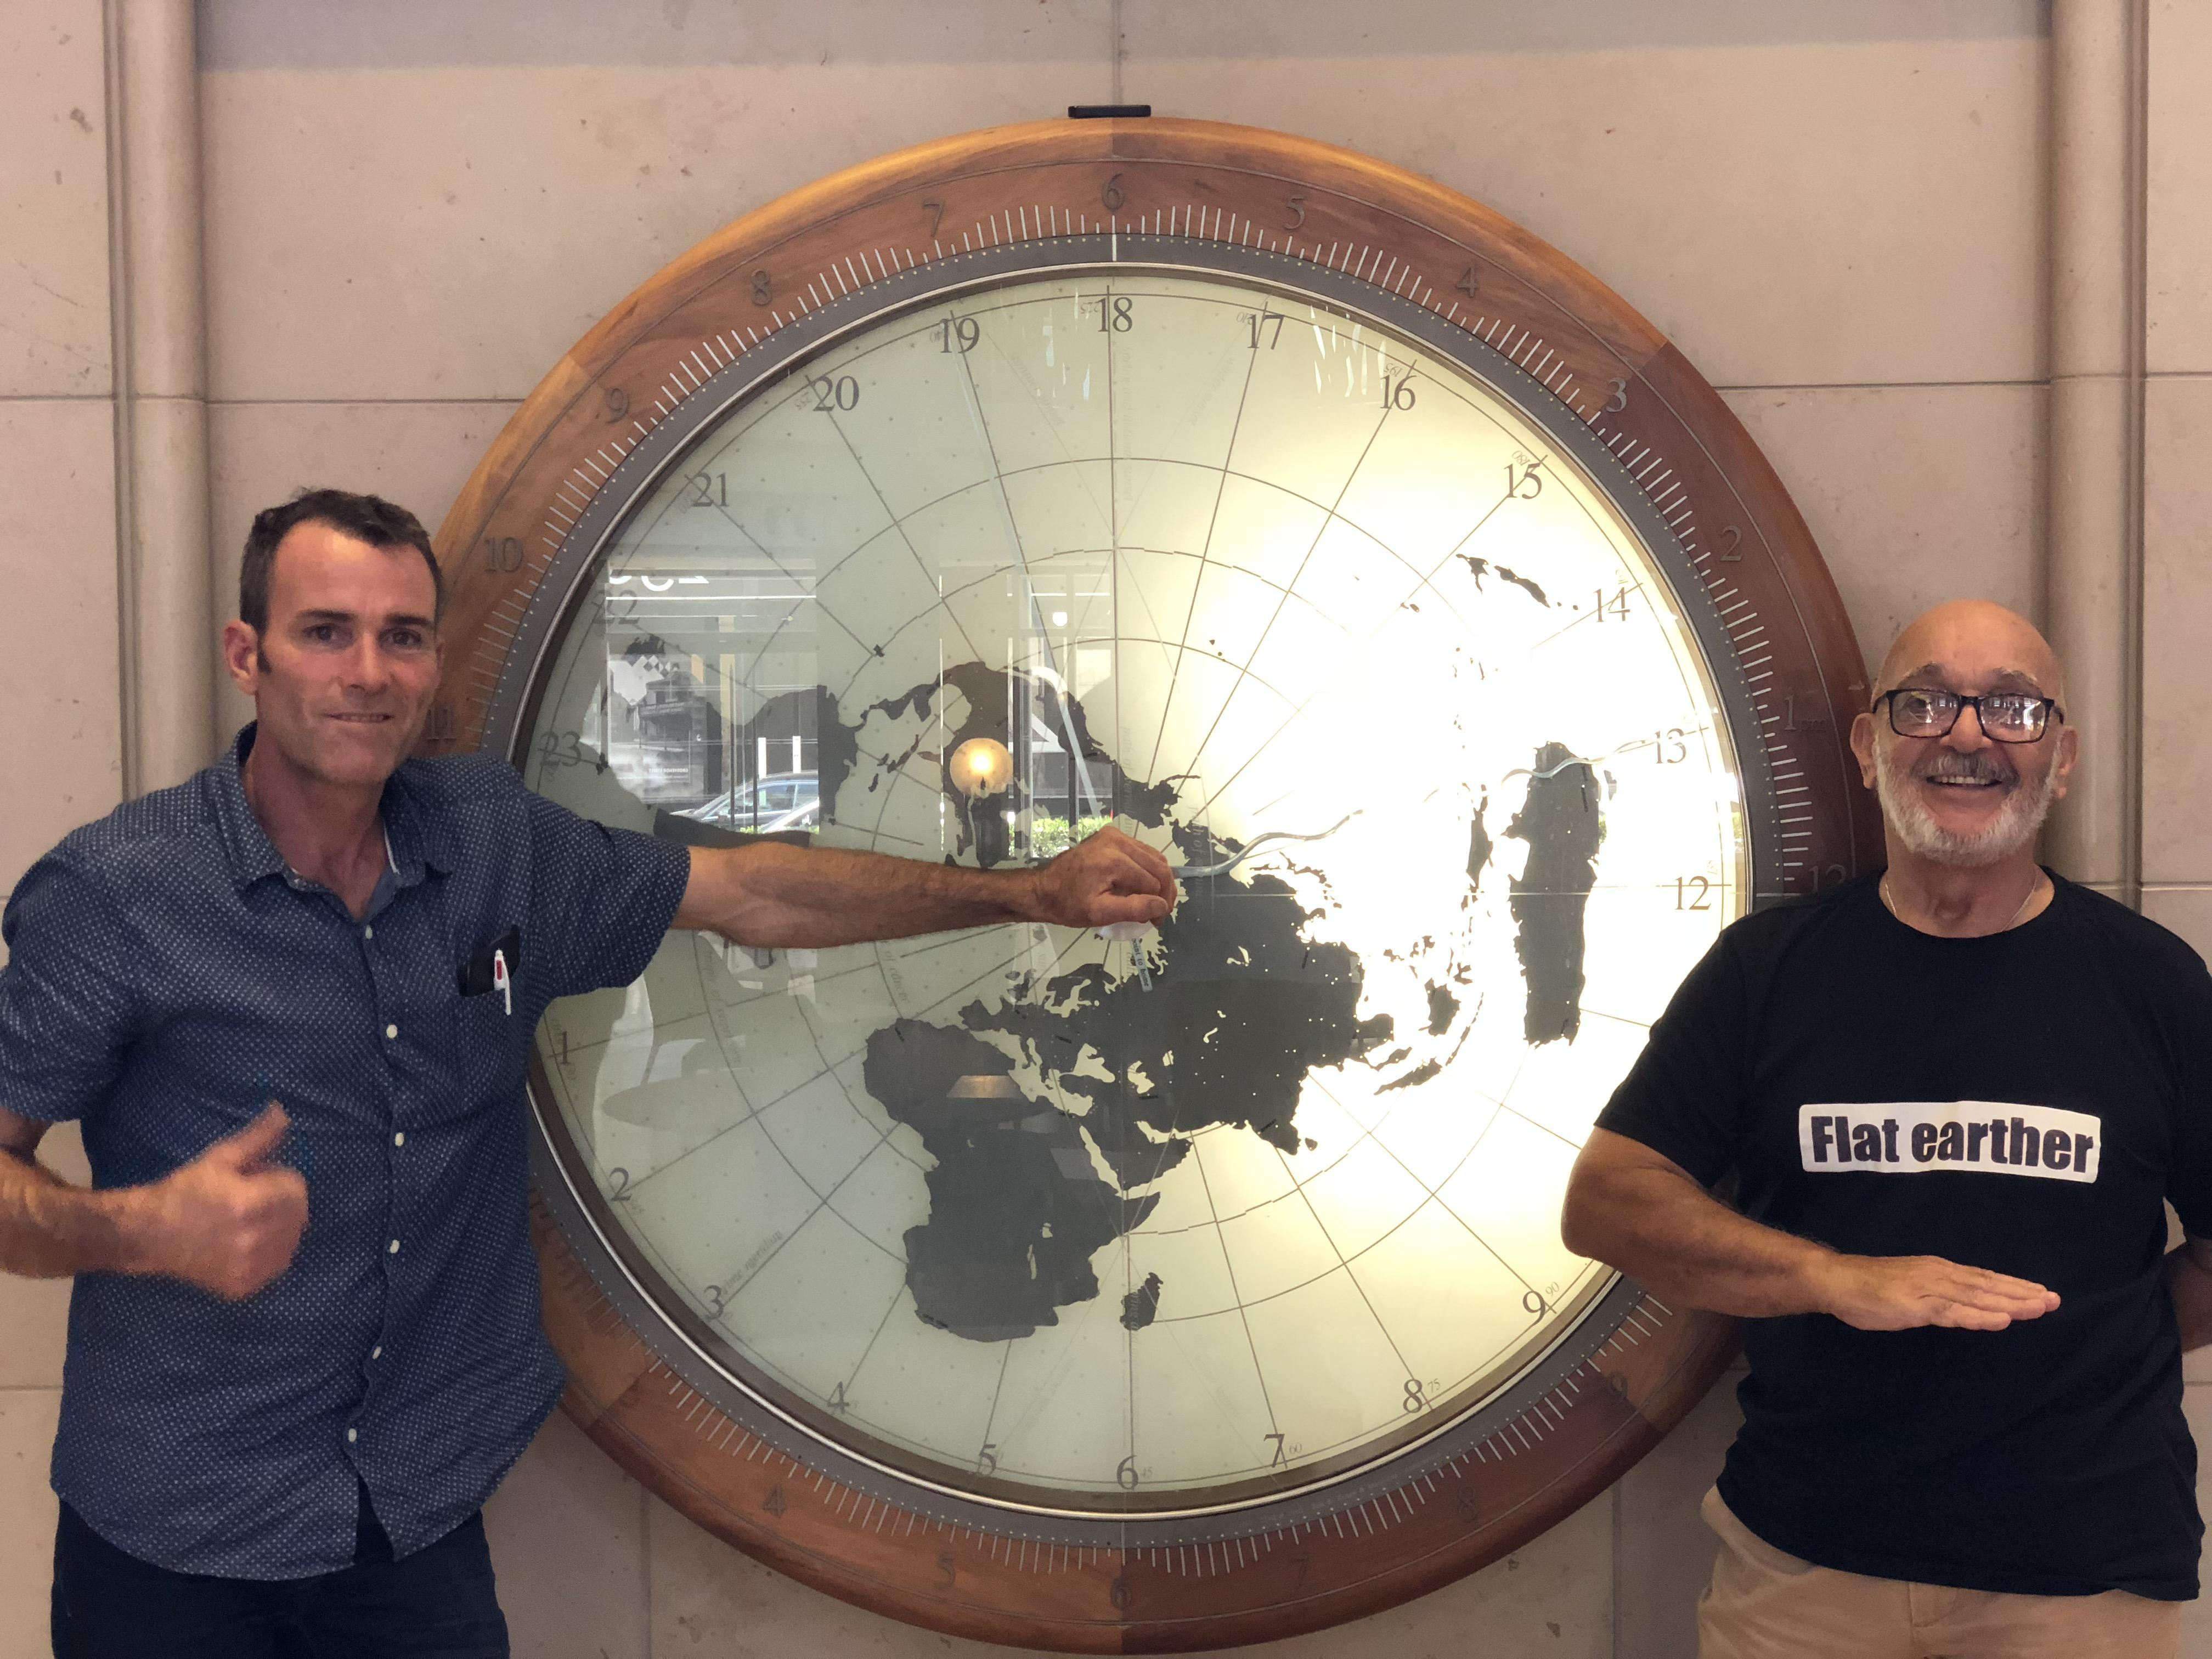 Lee and Artigas, the two people who turned up to the flat-Earth convention, in front of a map of the world.